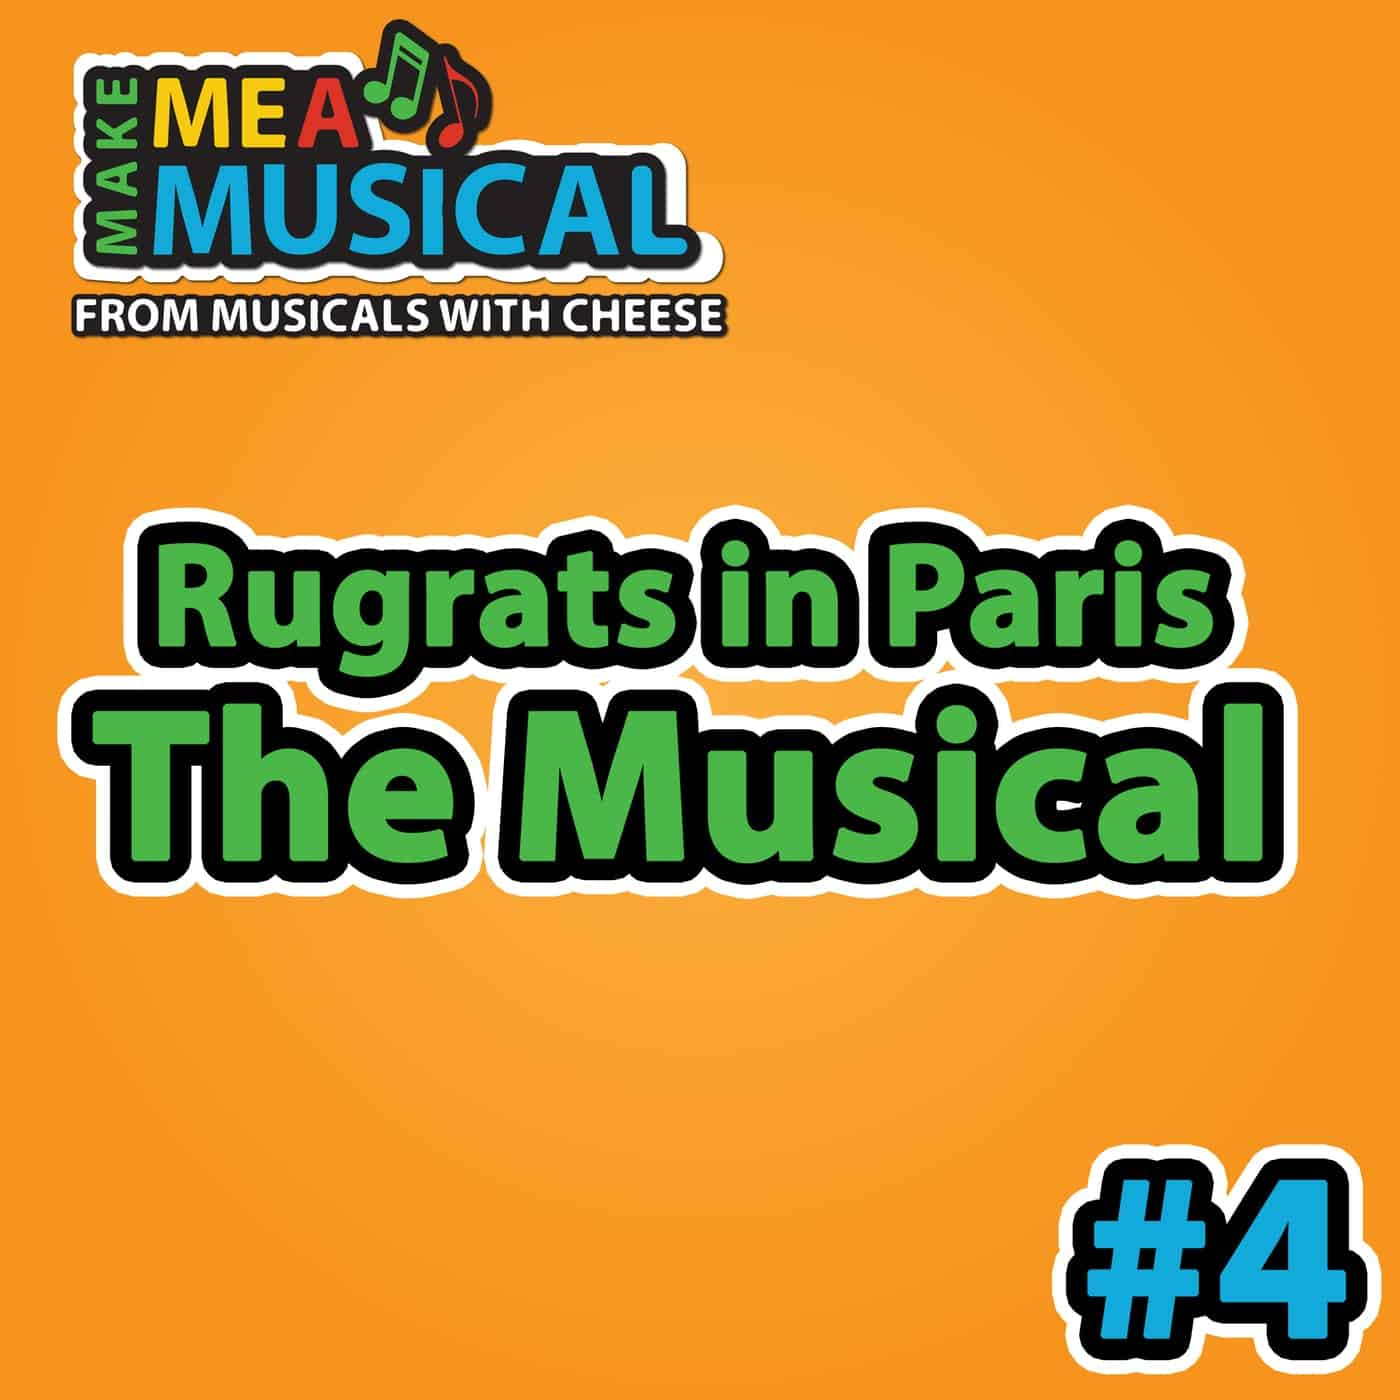 Rugrats in Paris the Musical -  Make me a Musical #4